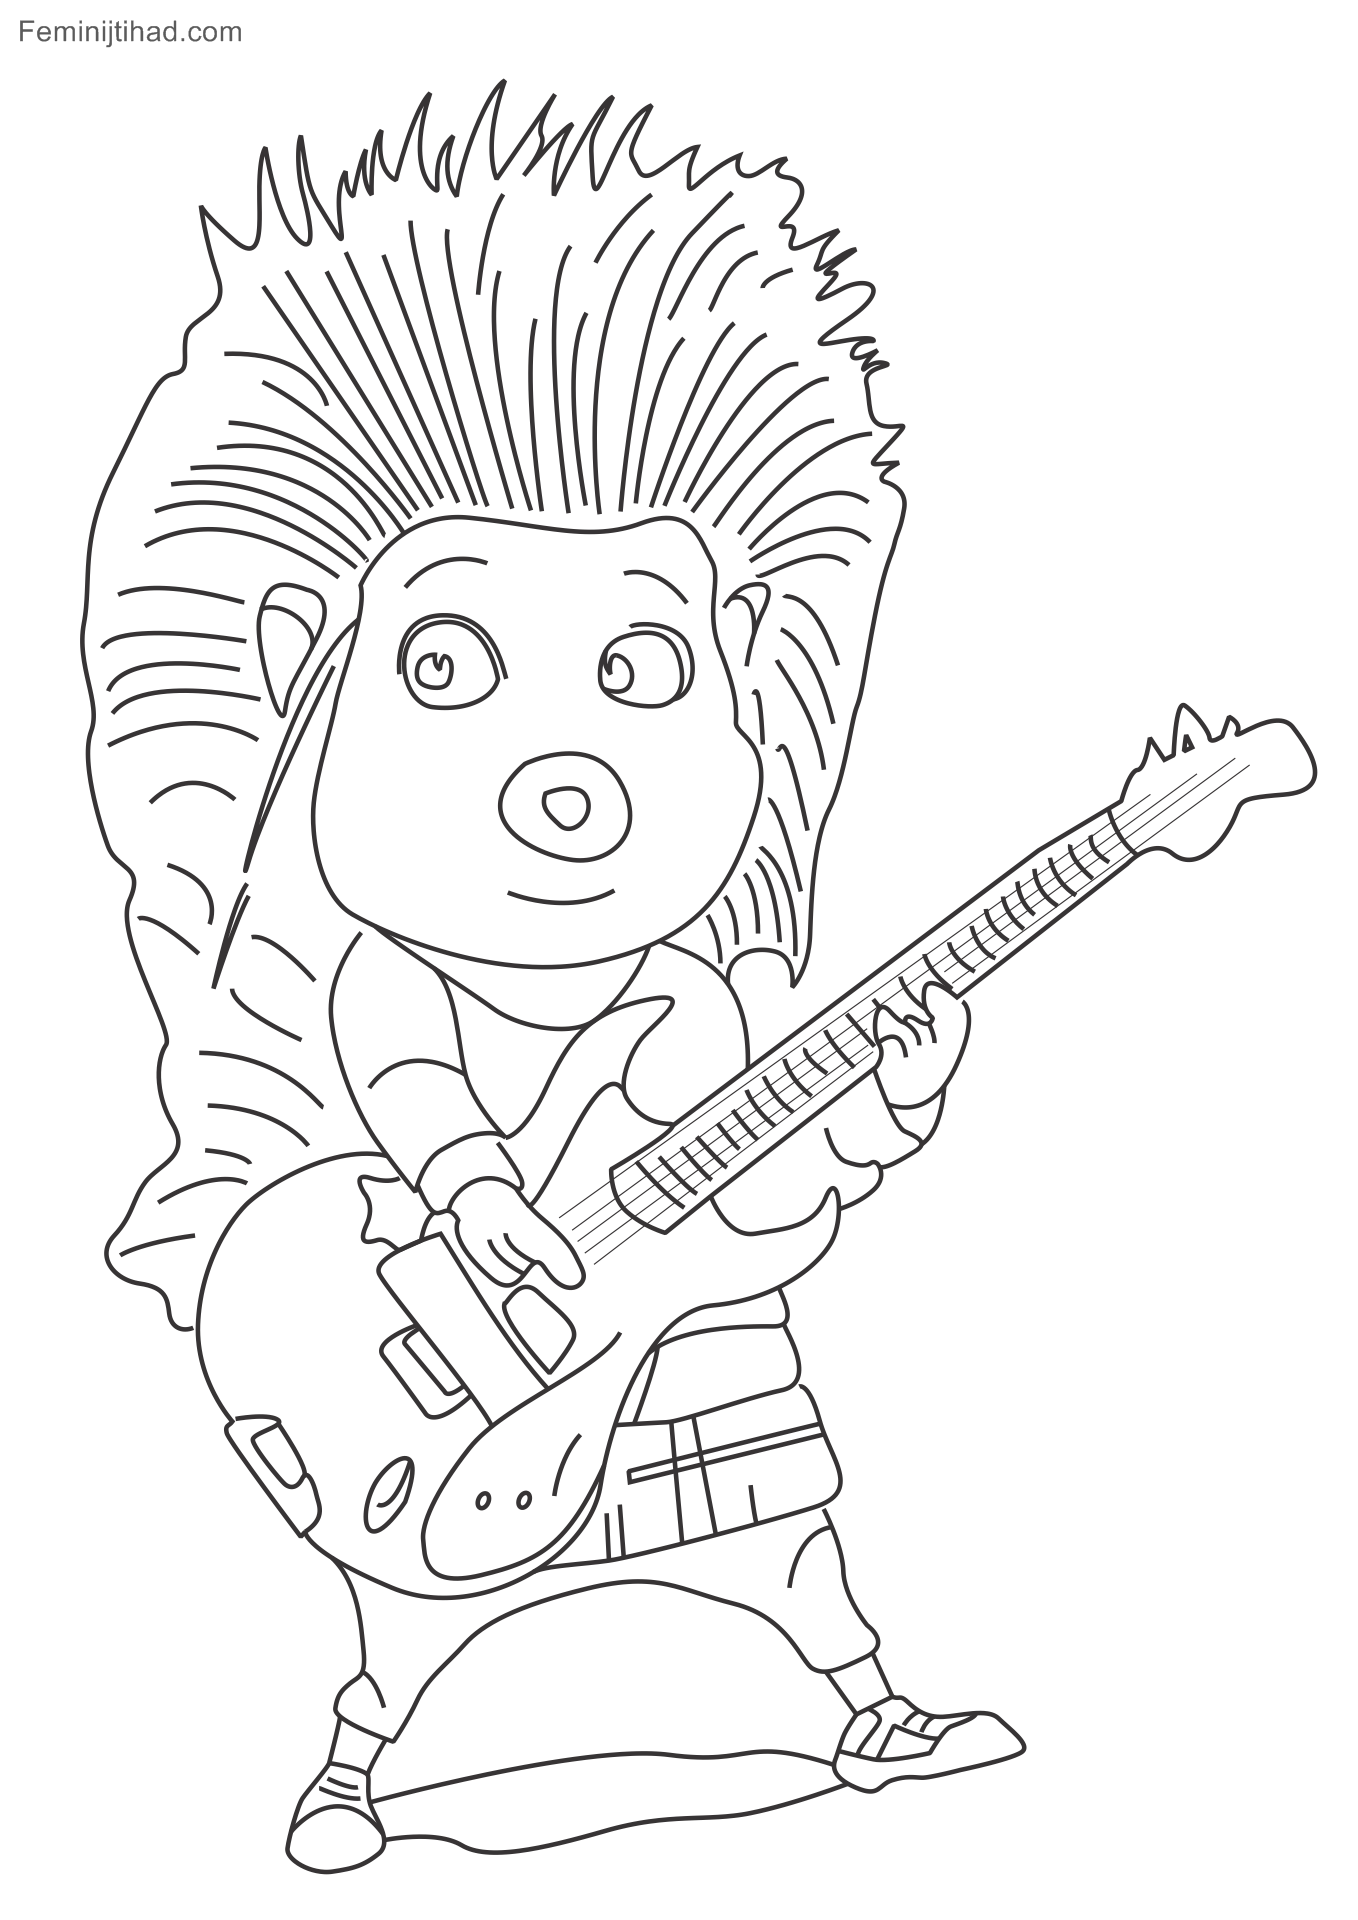 Sing Movie Coloring Pages Free Coloring Pages For Kids Sing Movie Hello Kitty Colouring Pages Cartoon Coloring Pages